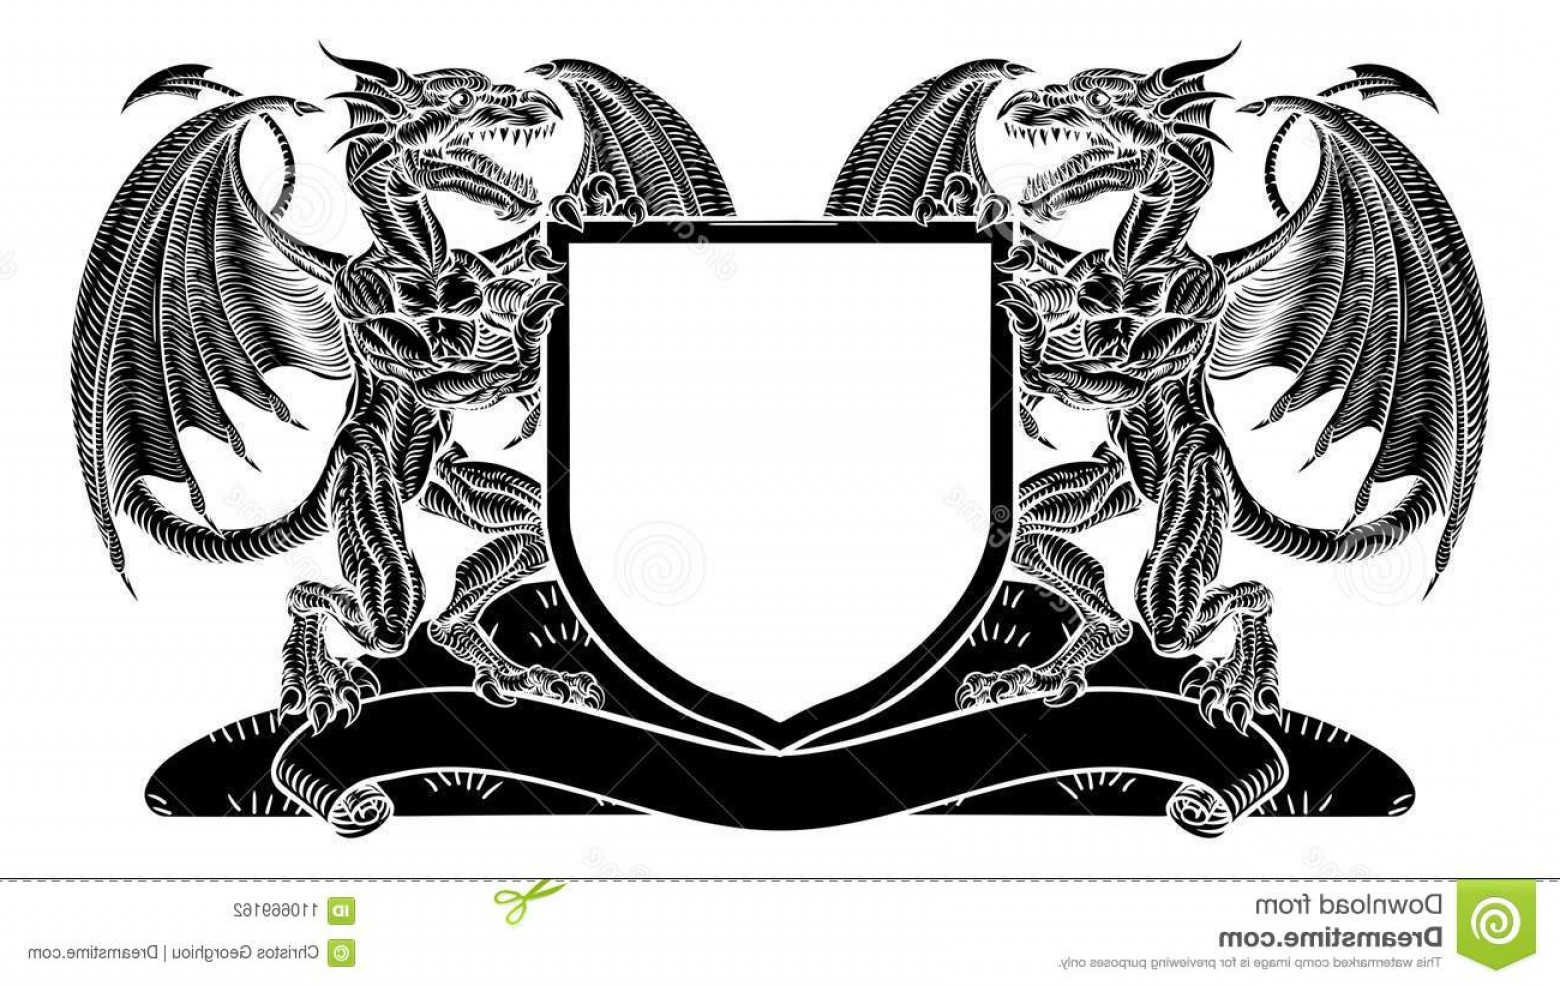 Crest And Coat Of Arms Vector Silhouette: Dragon Heraldry Crest Coat Arms Shield Emblem Medieval Heraldic Featuring Rampant Animal Supporters Flanking Charge Image